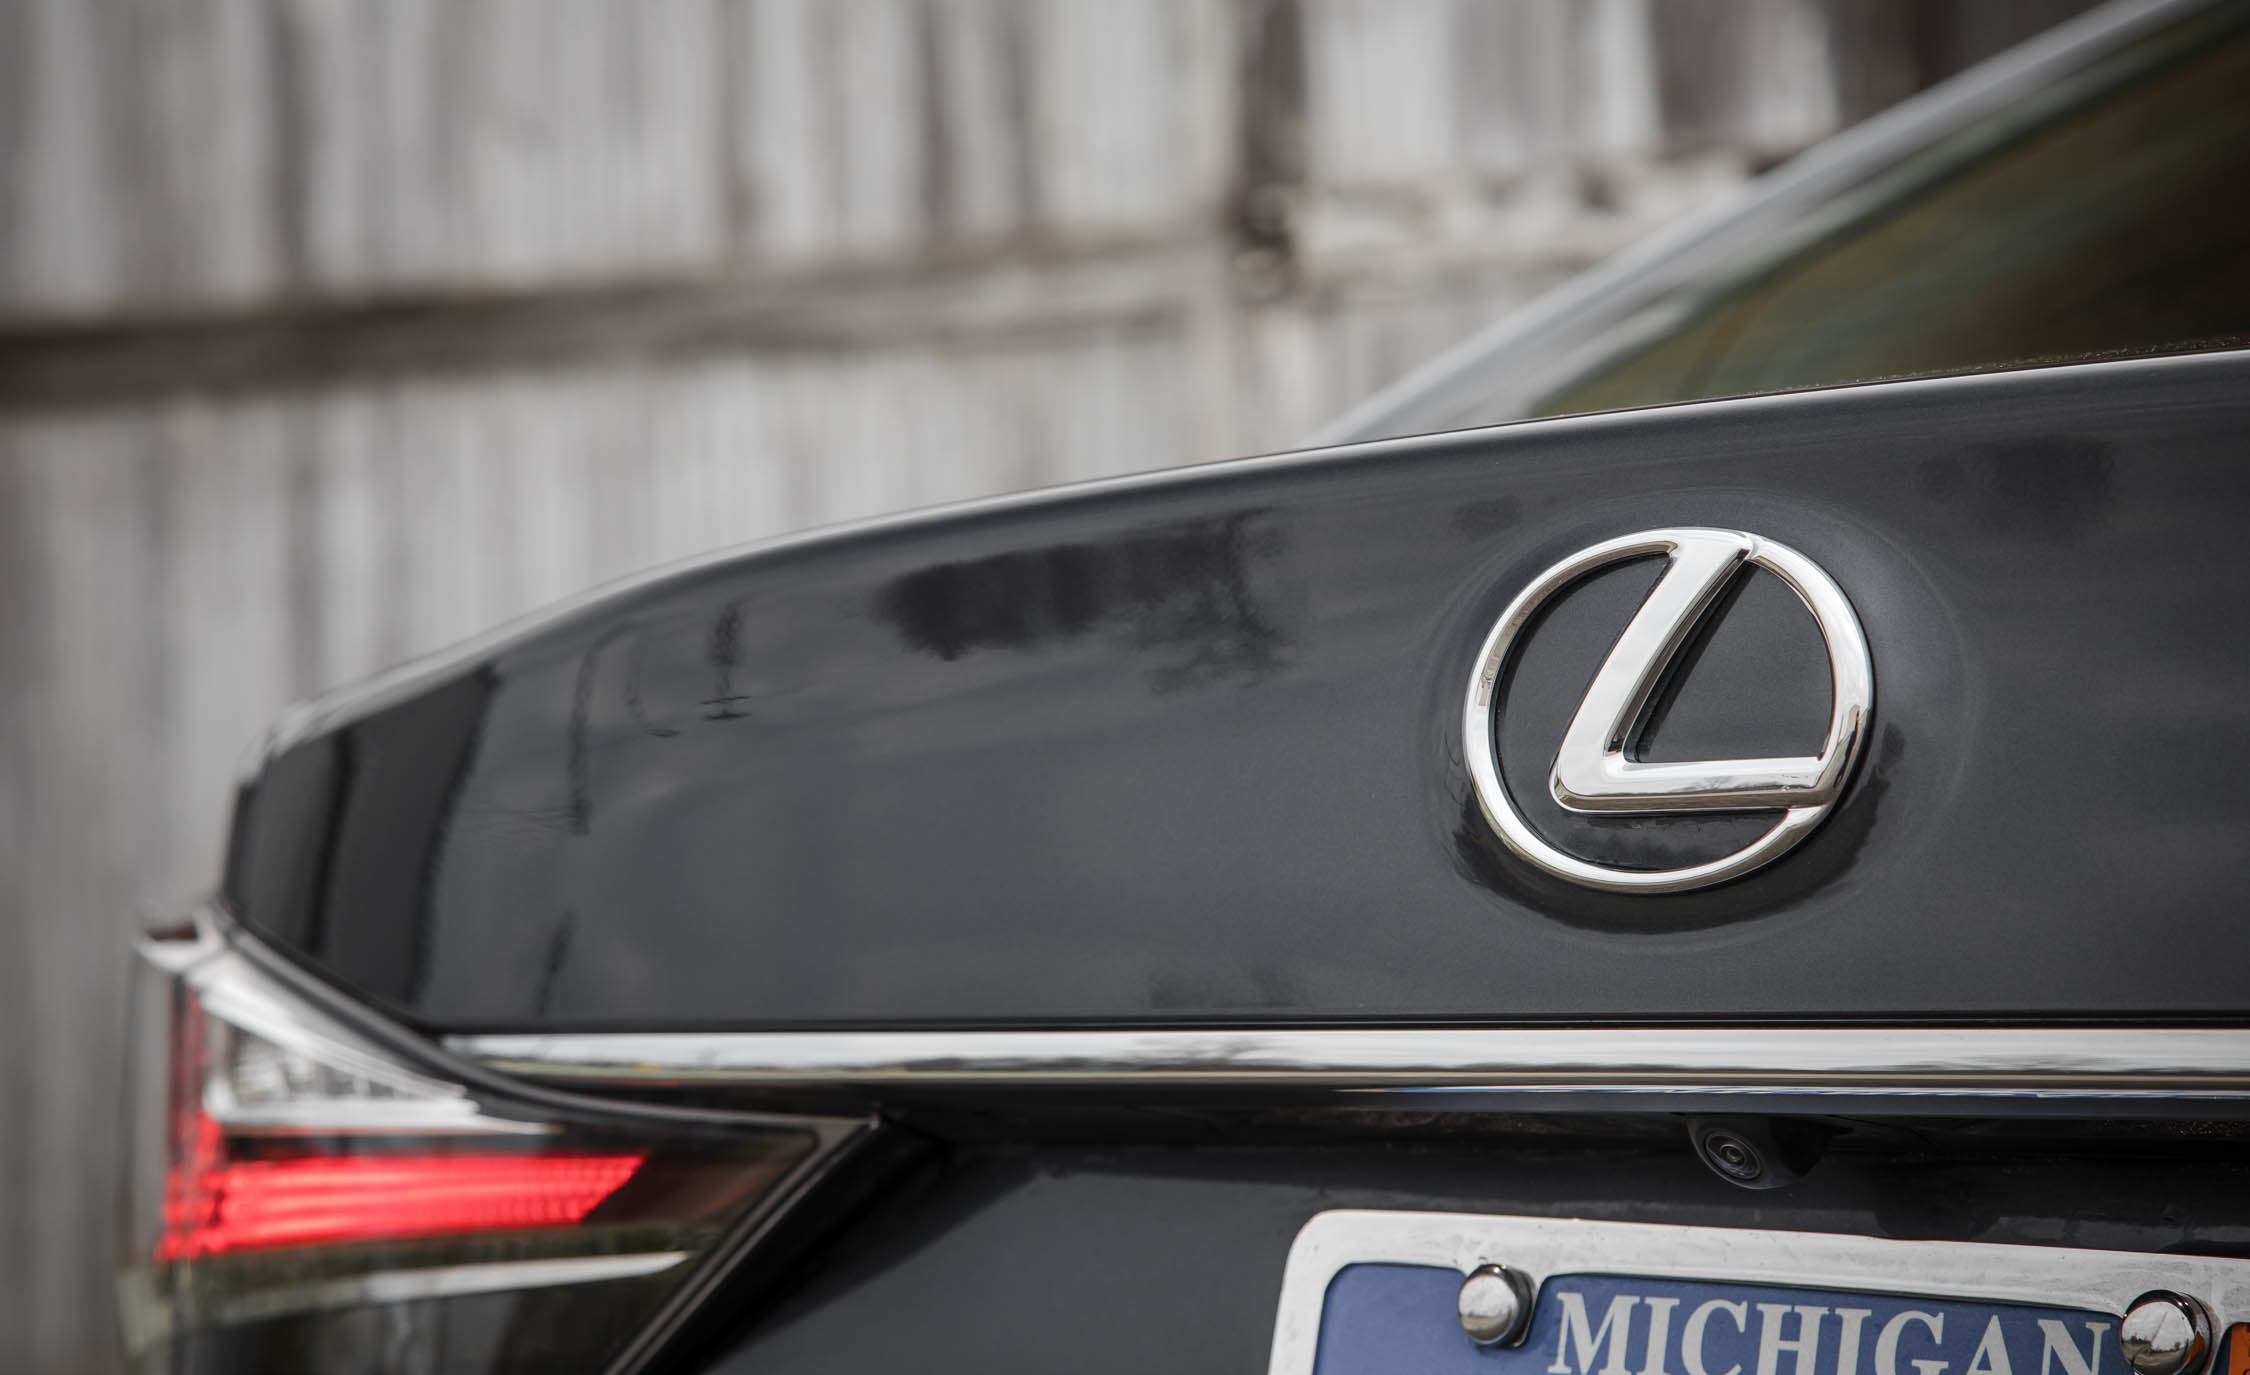 2017 Lexus GS200t Exterior View Rear Badge (Photo 11 of 26)